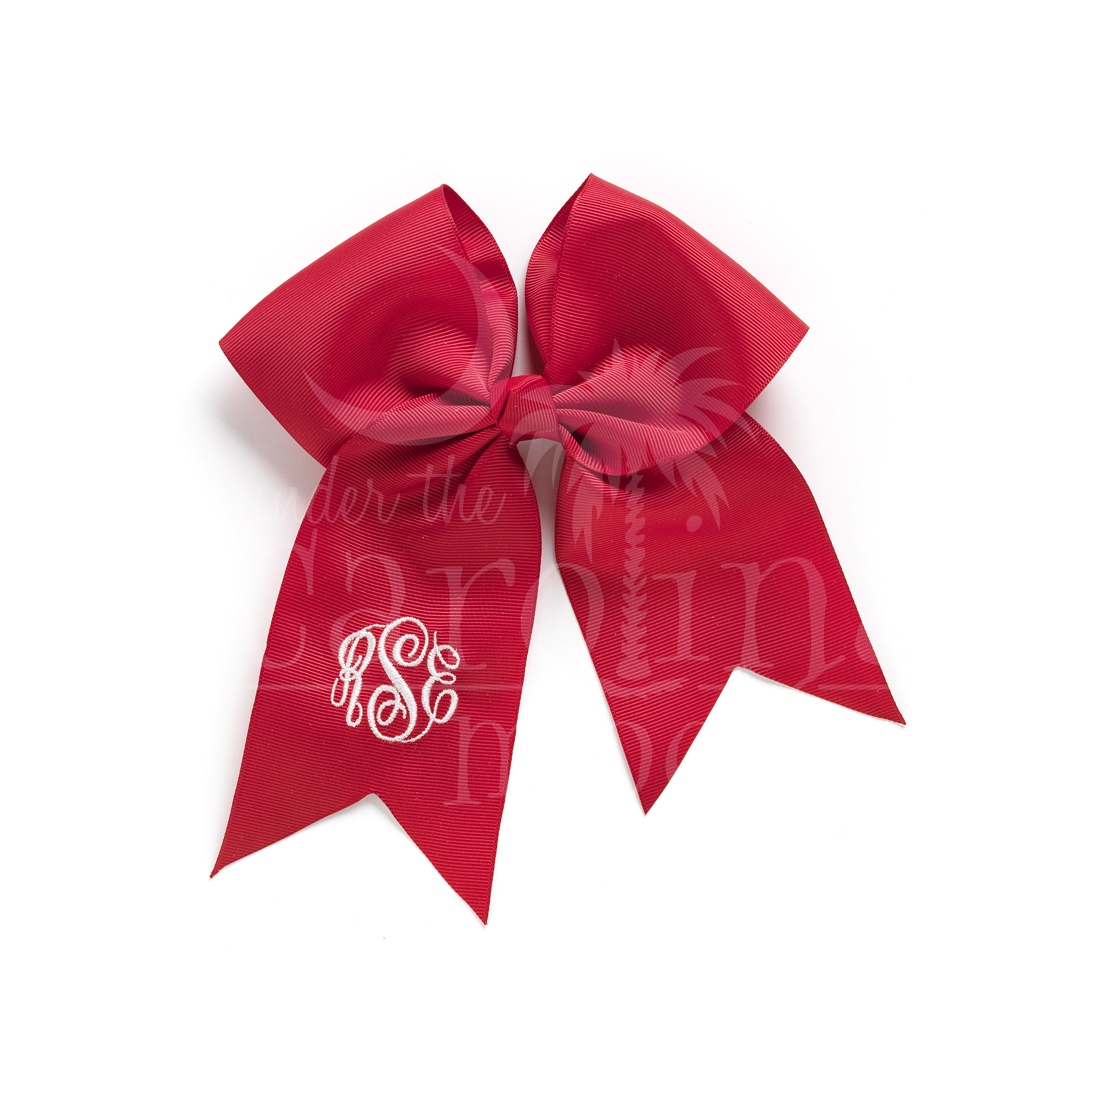 Monogrammed Red Hair Bow